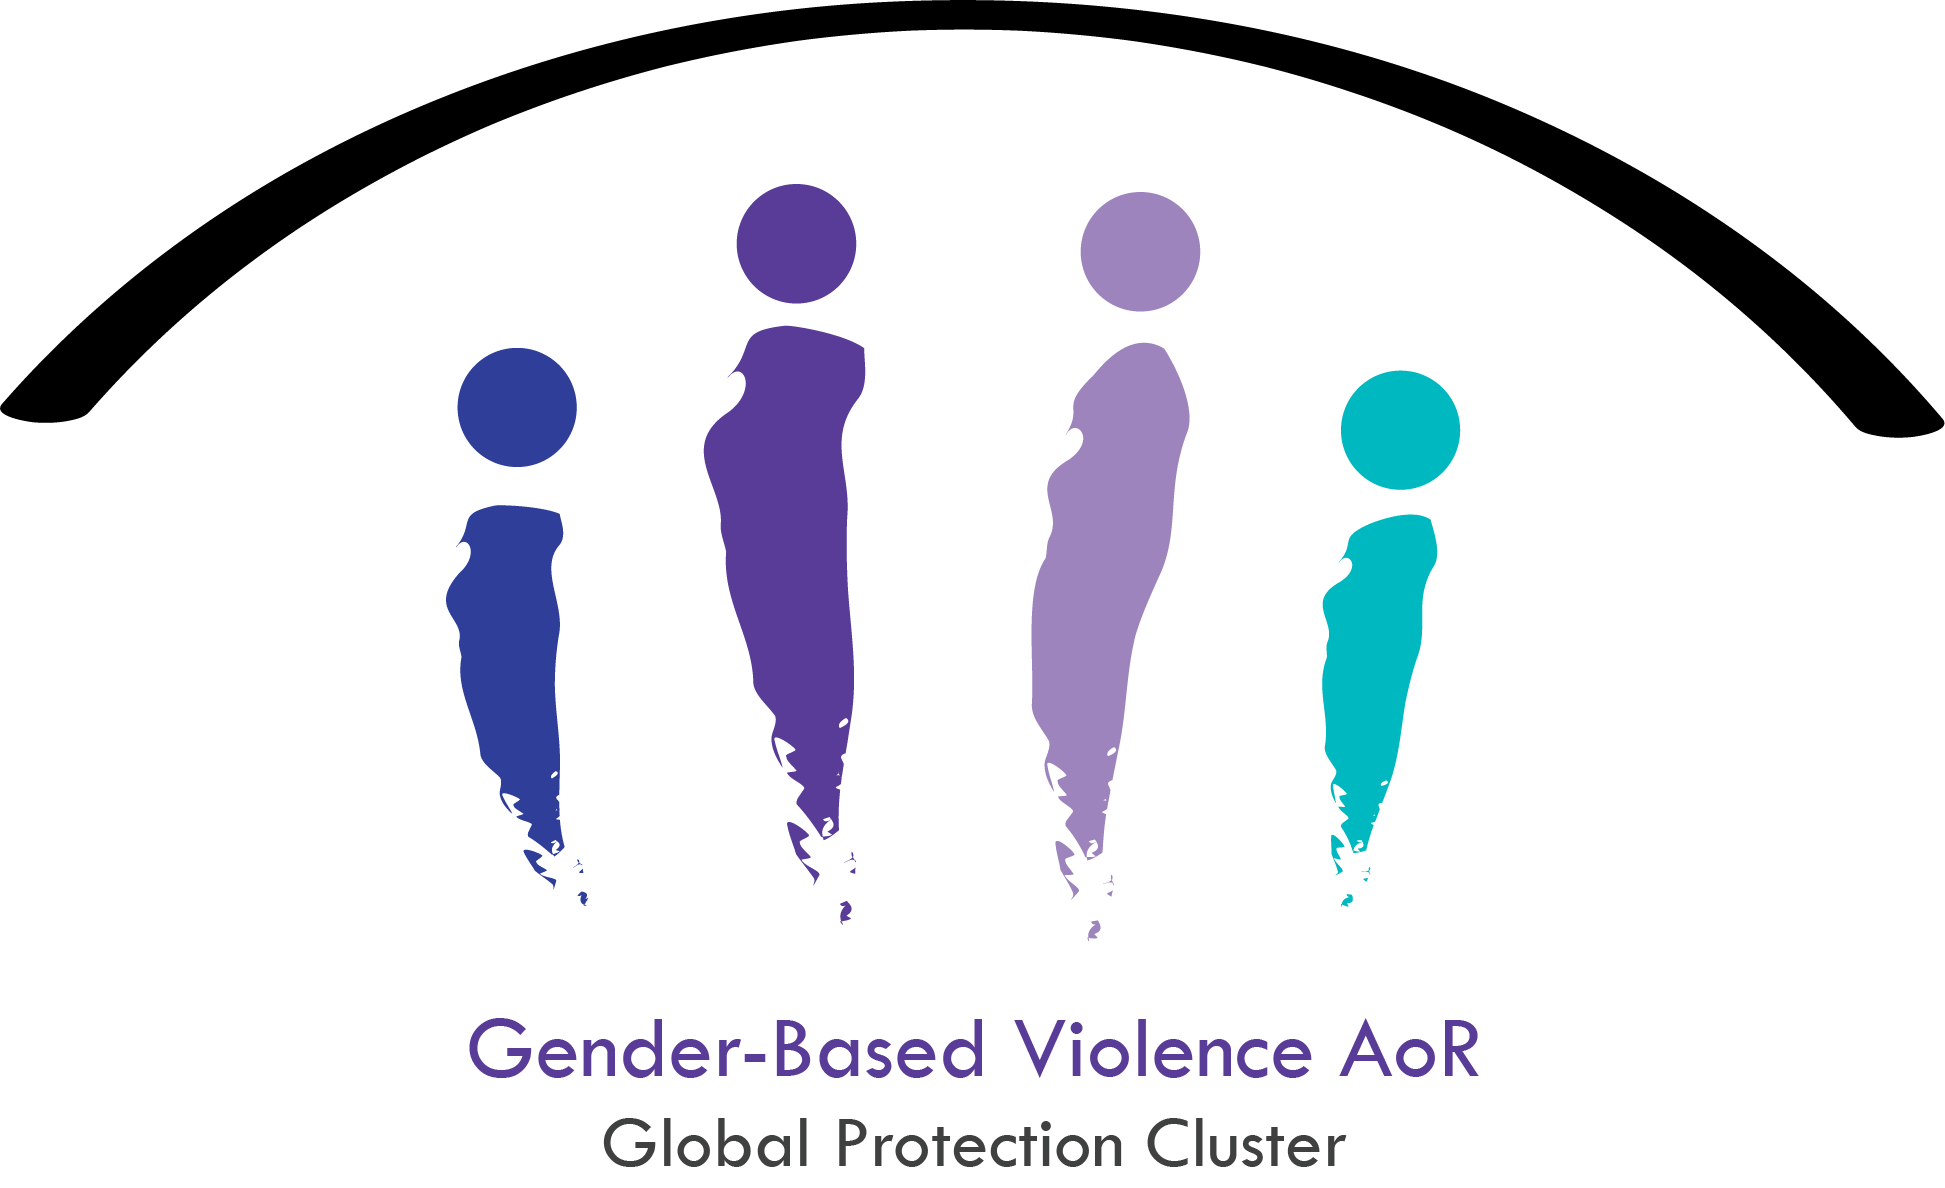 GBV-AoR logo, Gender-Based Violence Area of Responsibility